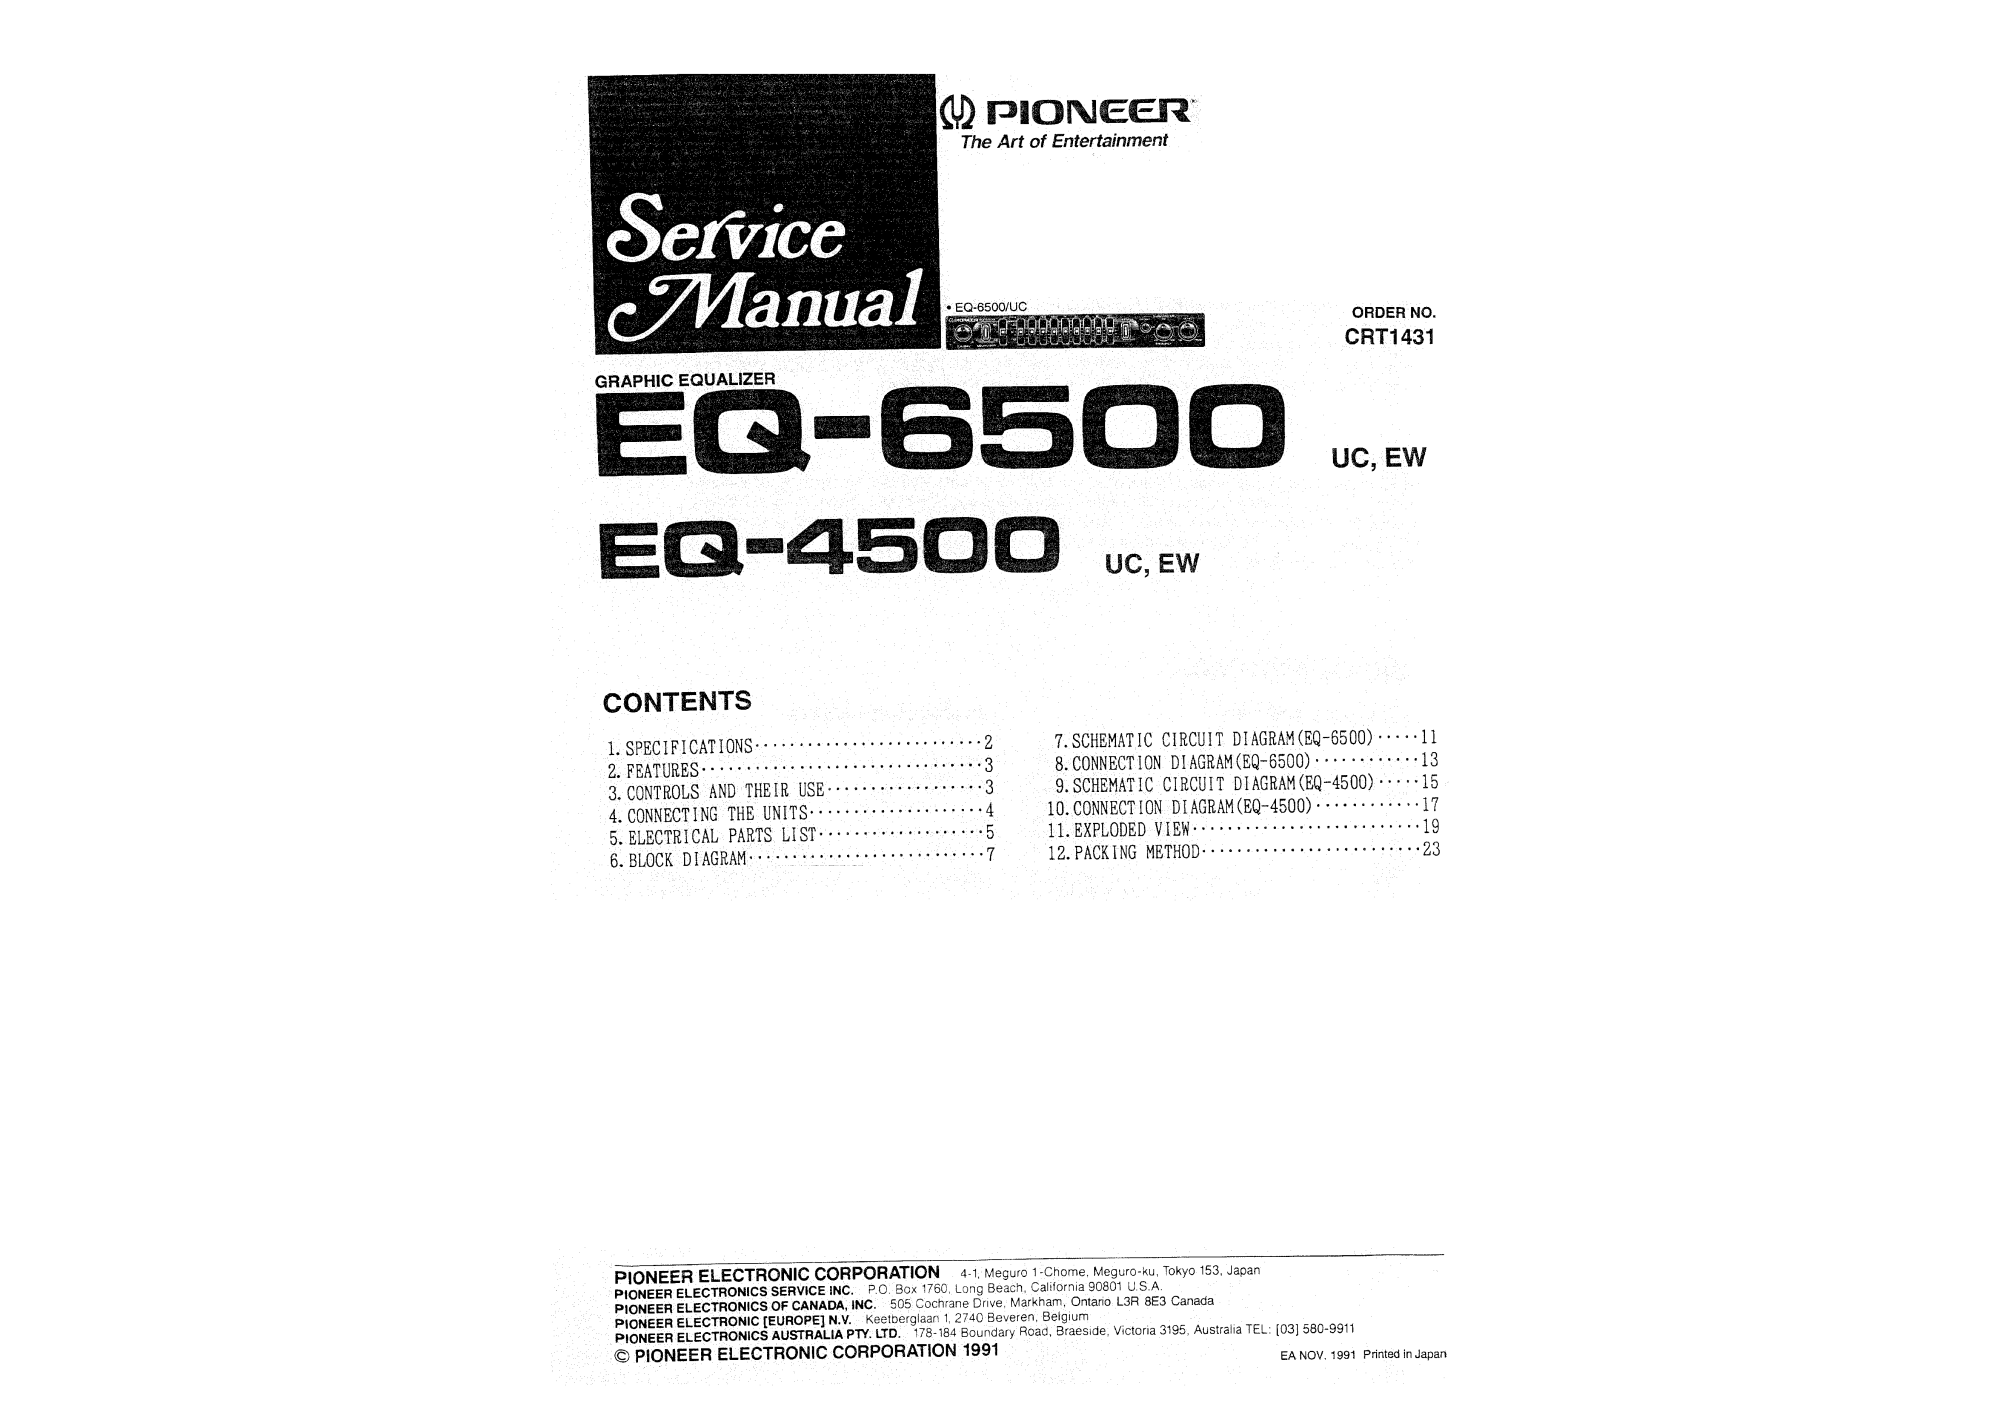 hight resolution of pioneer eq 6500 uc ew service manual immediate download pioneer deh p6500 pioneer eq 6500 service manual